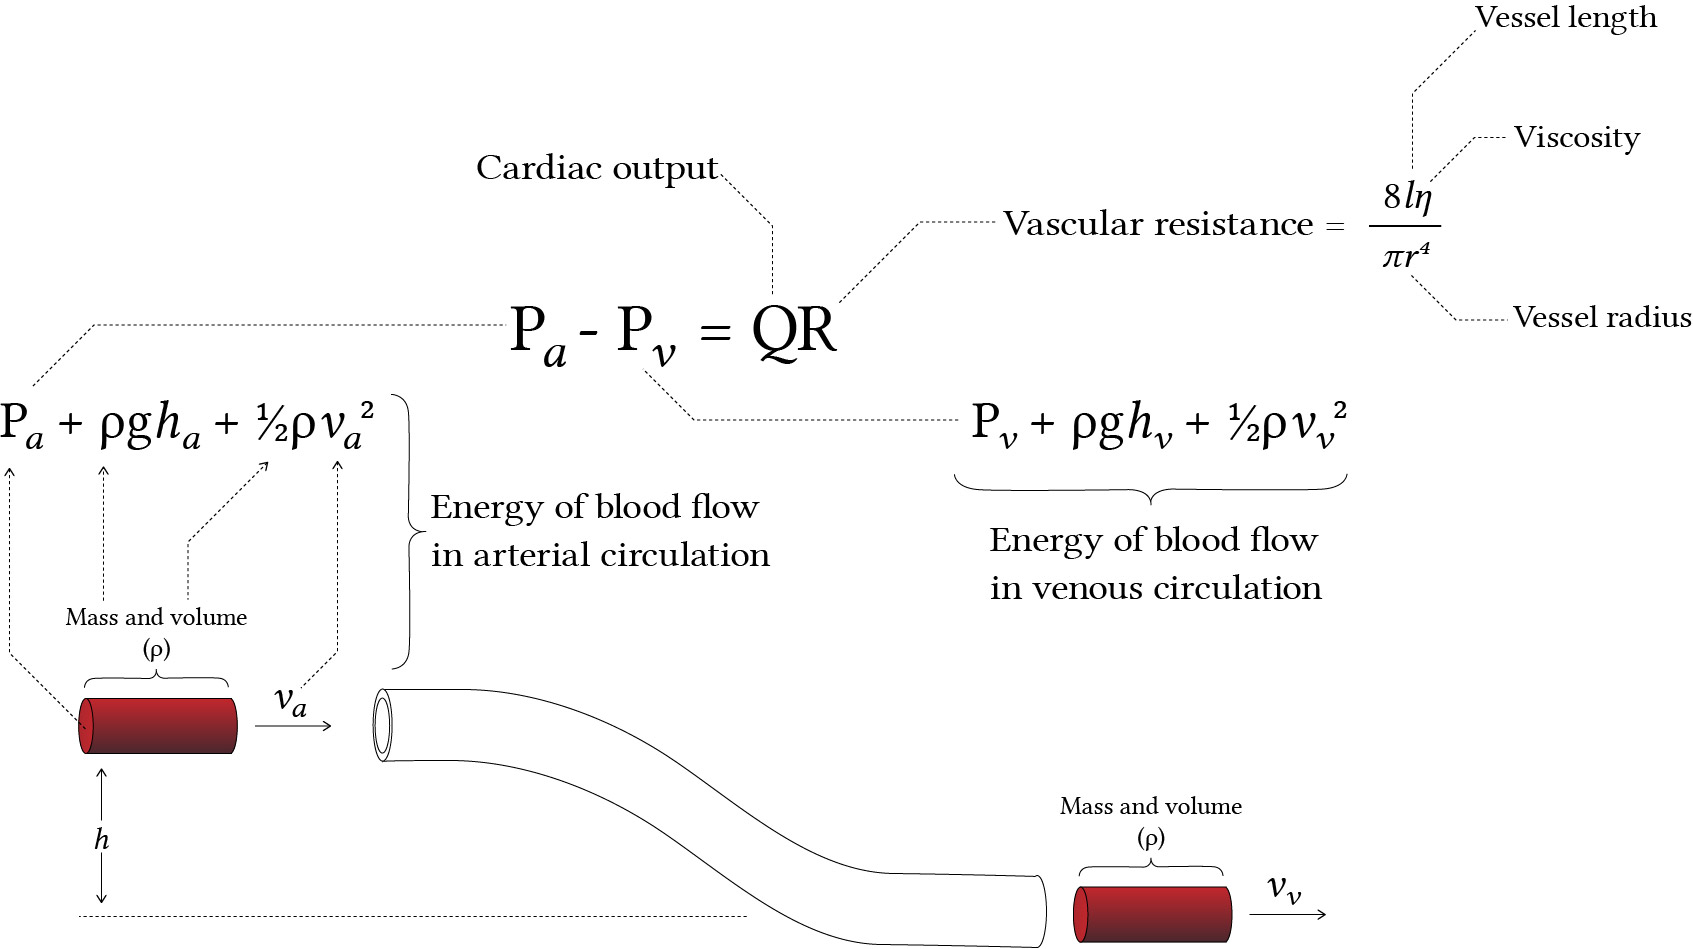 big crazy diagram, trying to relate energetics of blood flow to the relationship of flow pressure and resistance